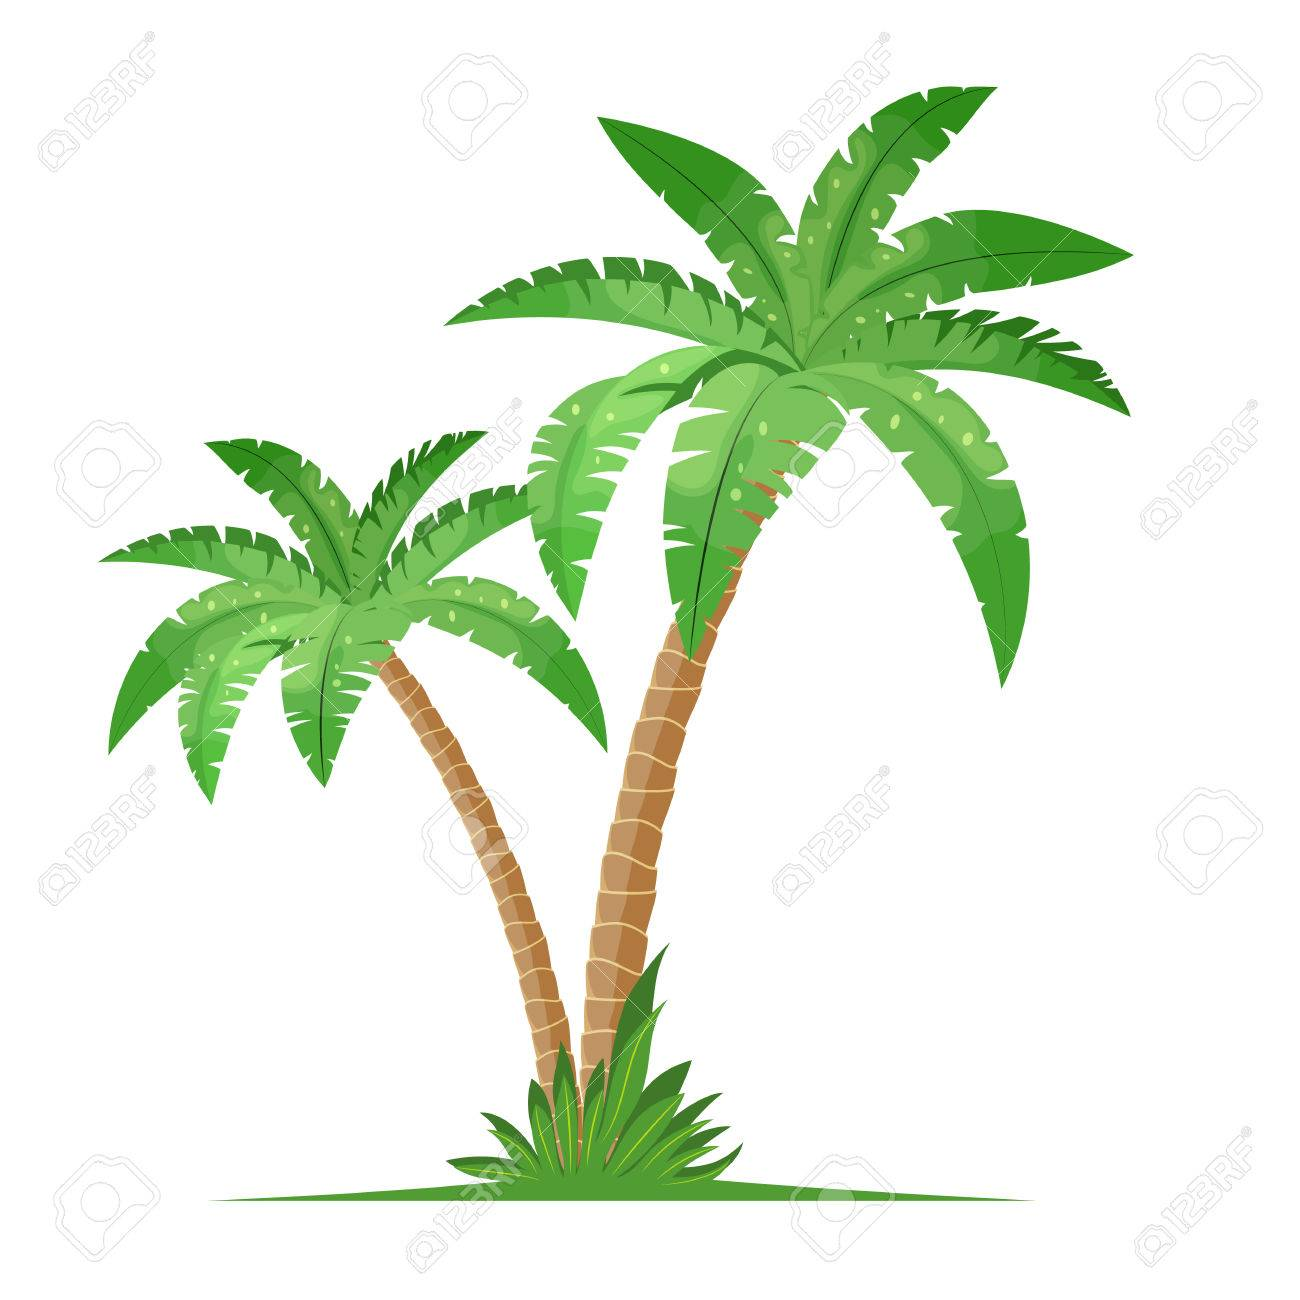 hight resolution of tropical palm trees isolated on white background coconut trees vector illustration in flat style